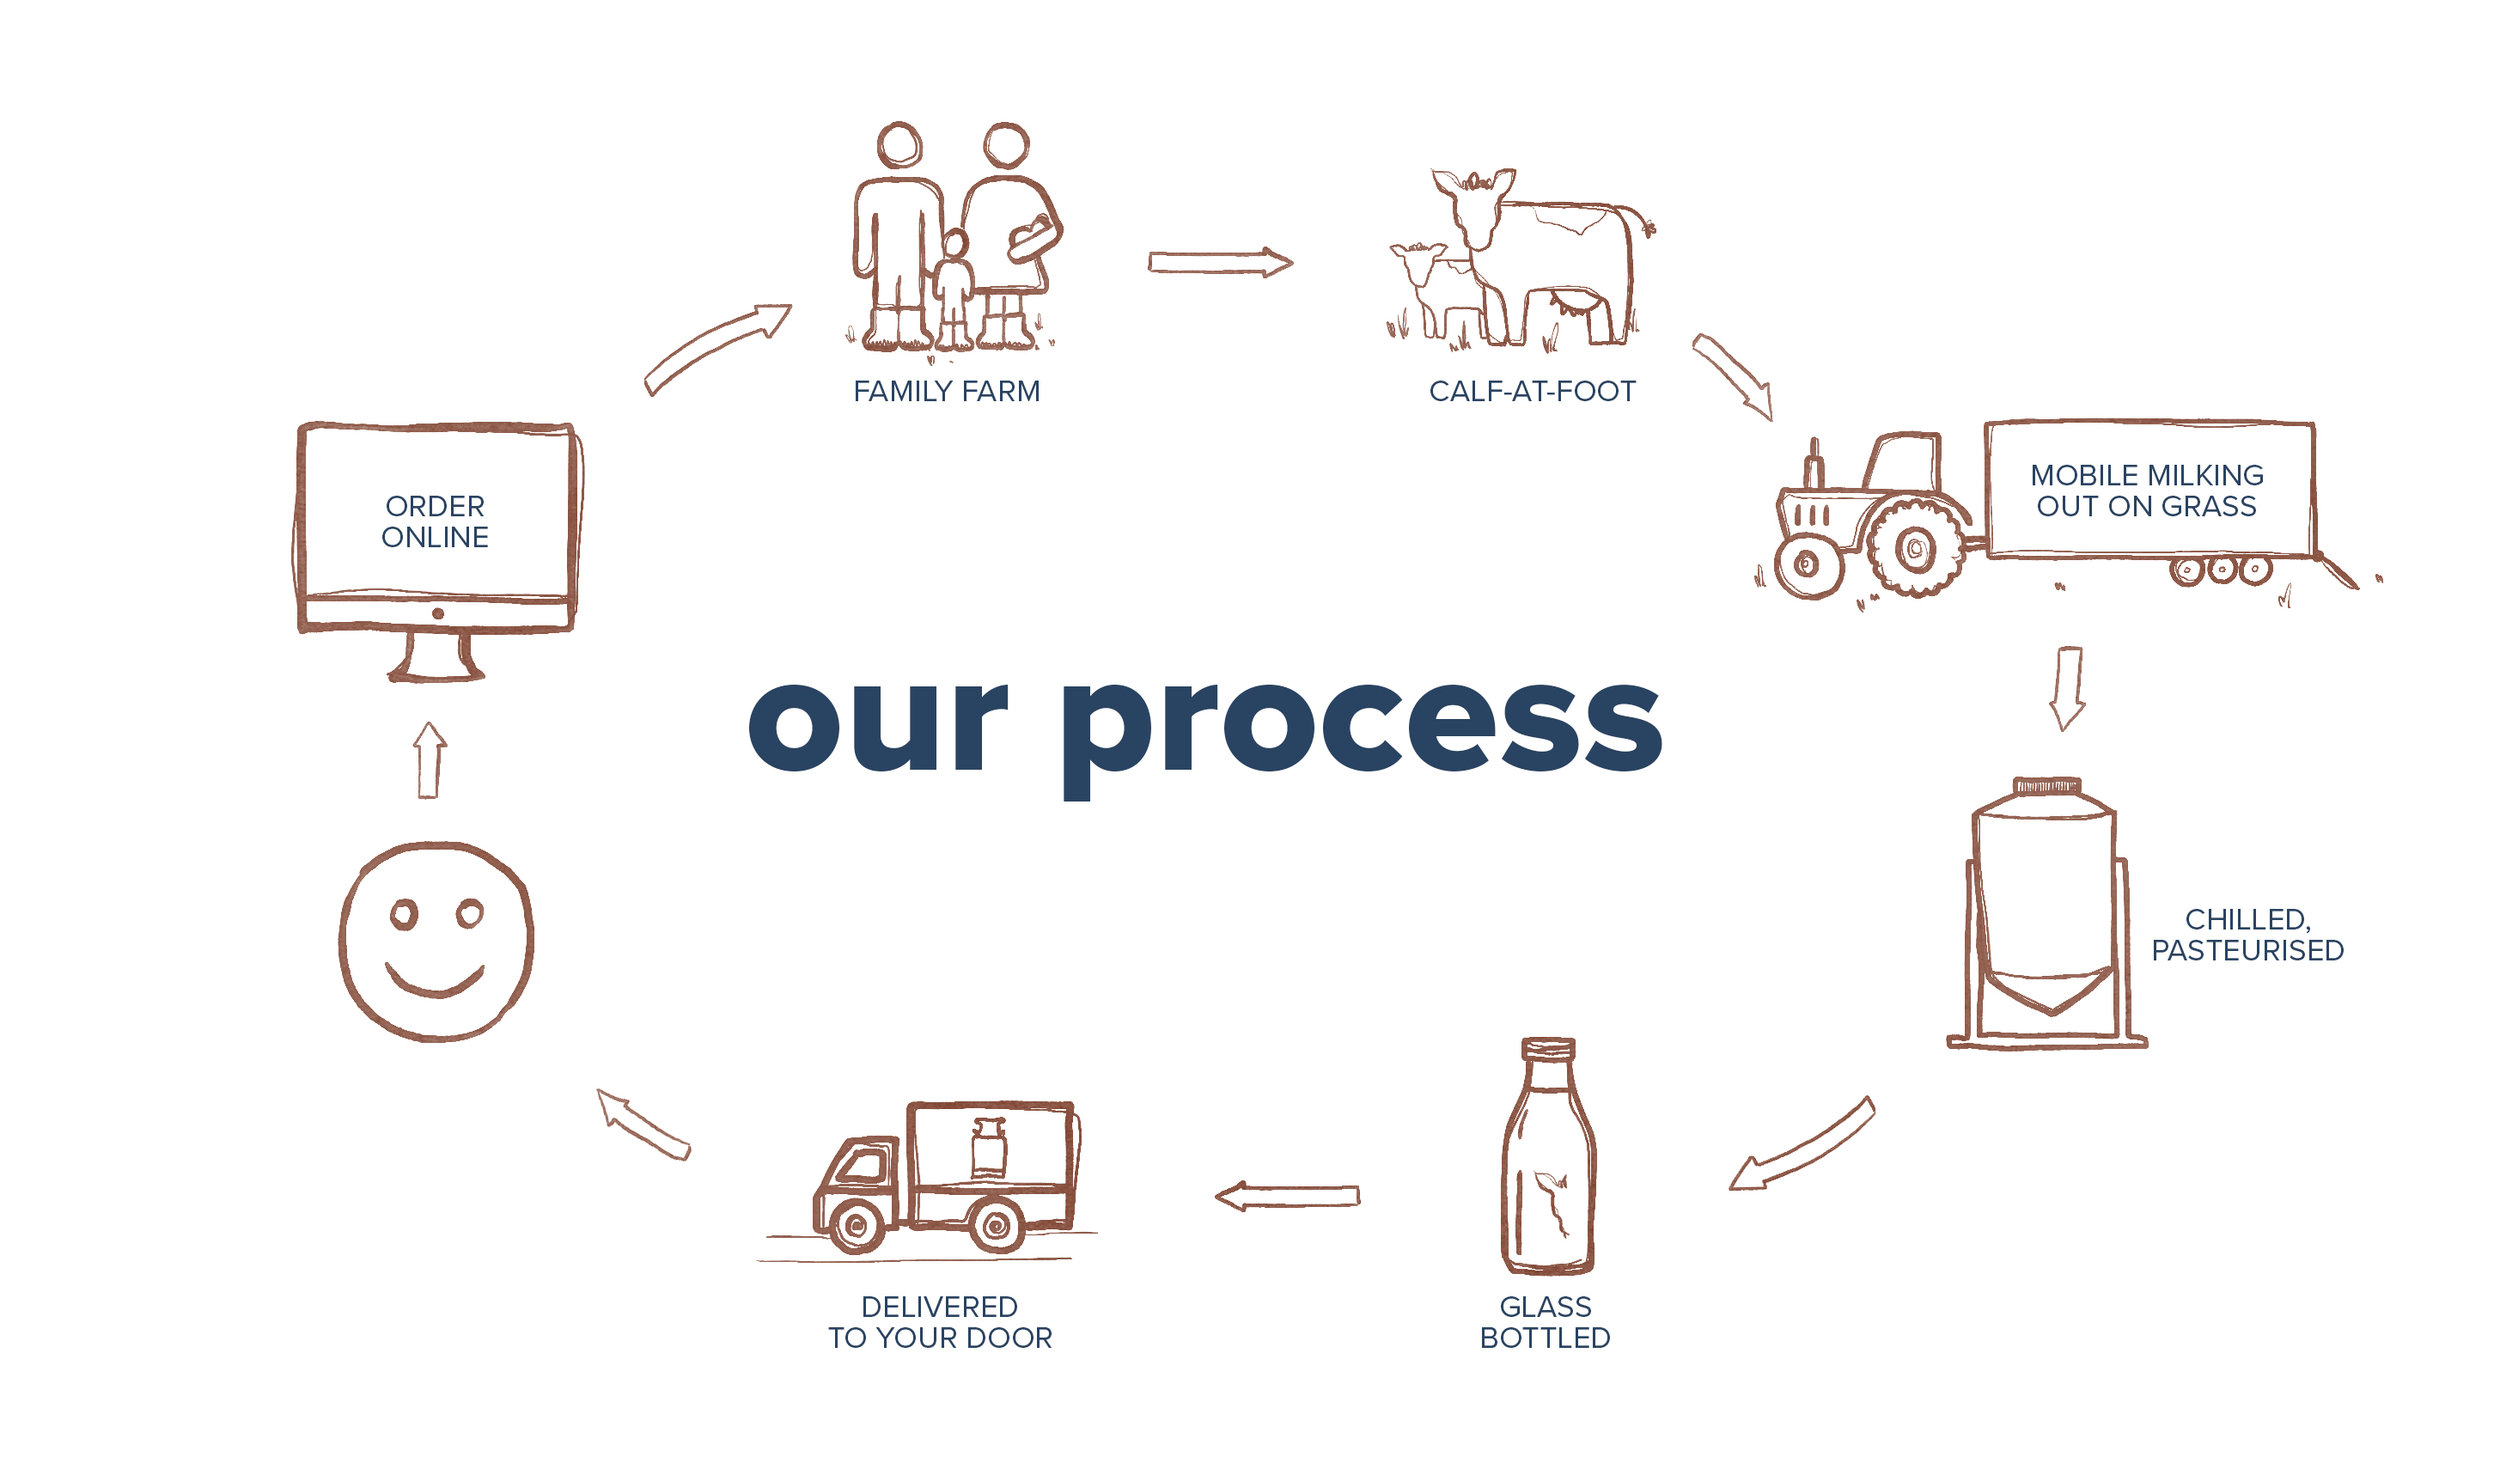 our process infographic.jpg